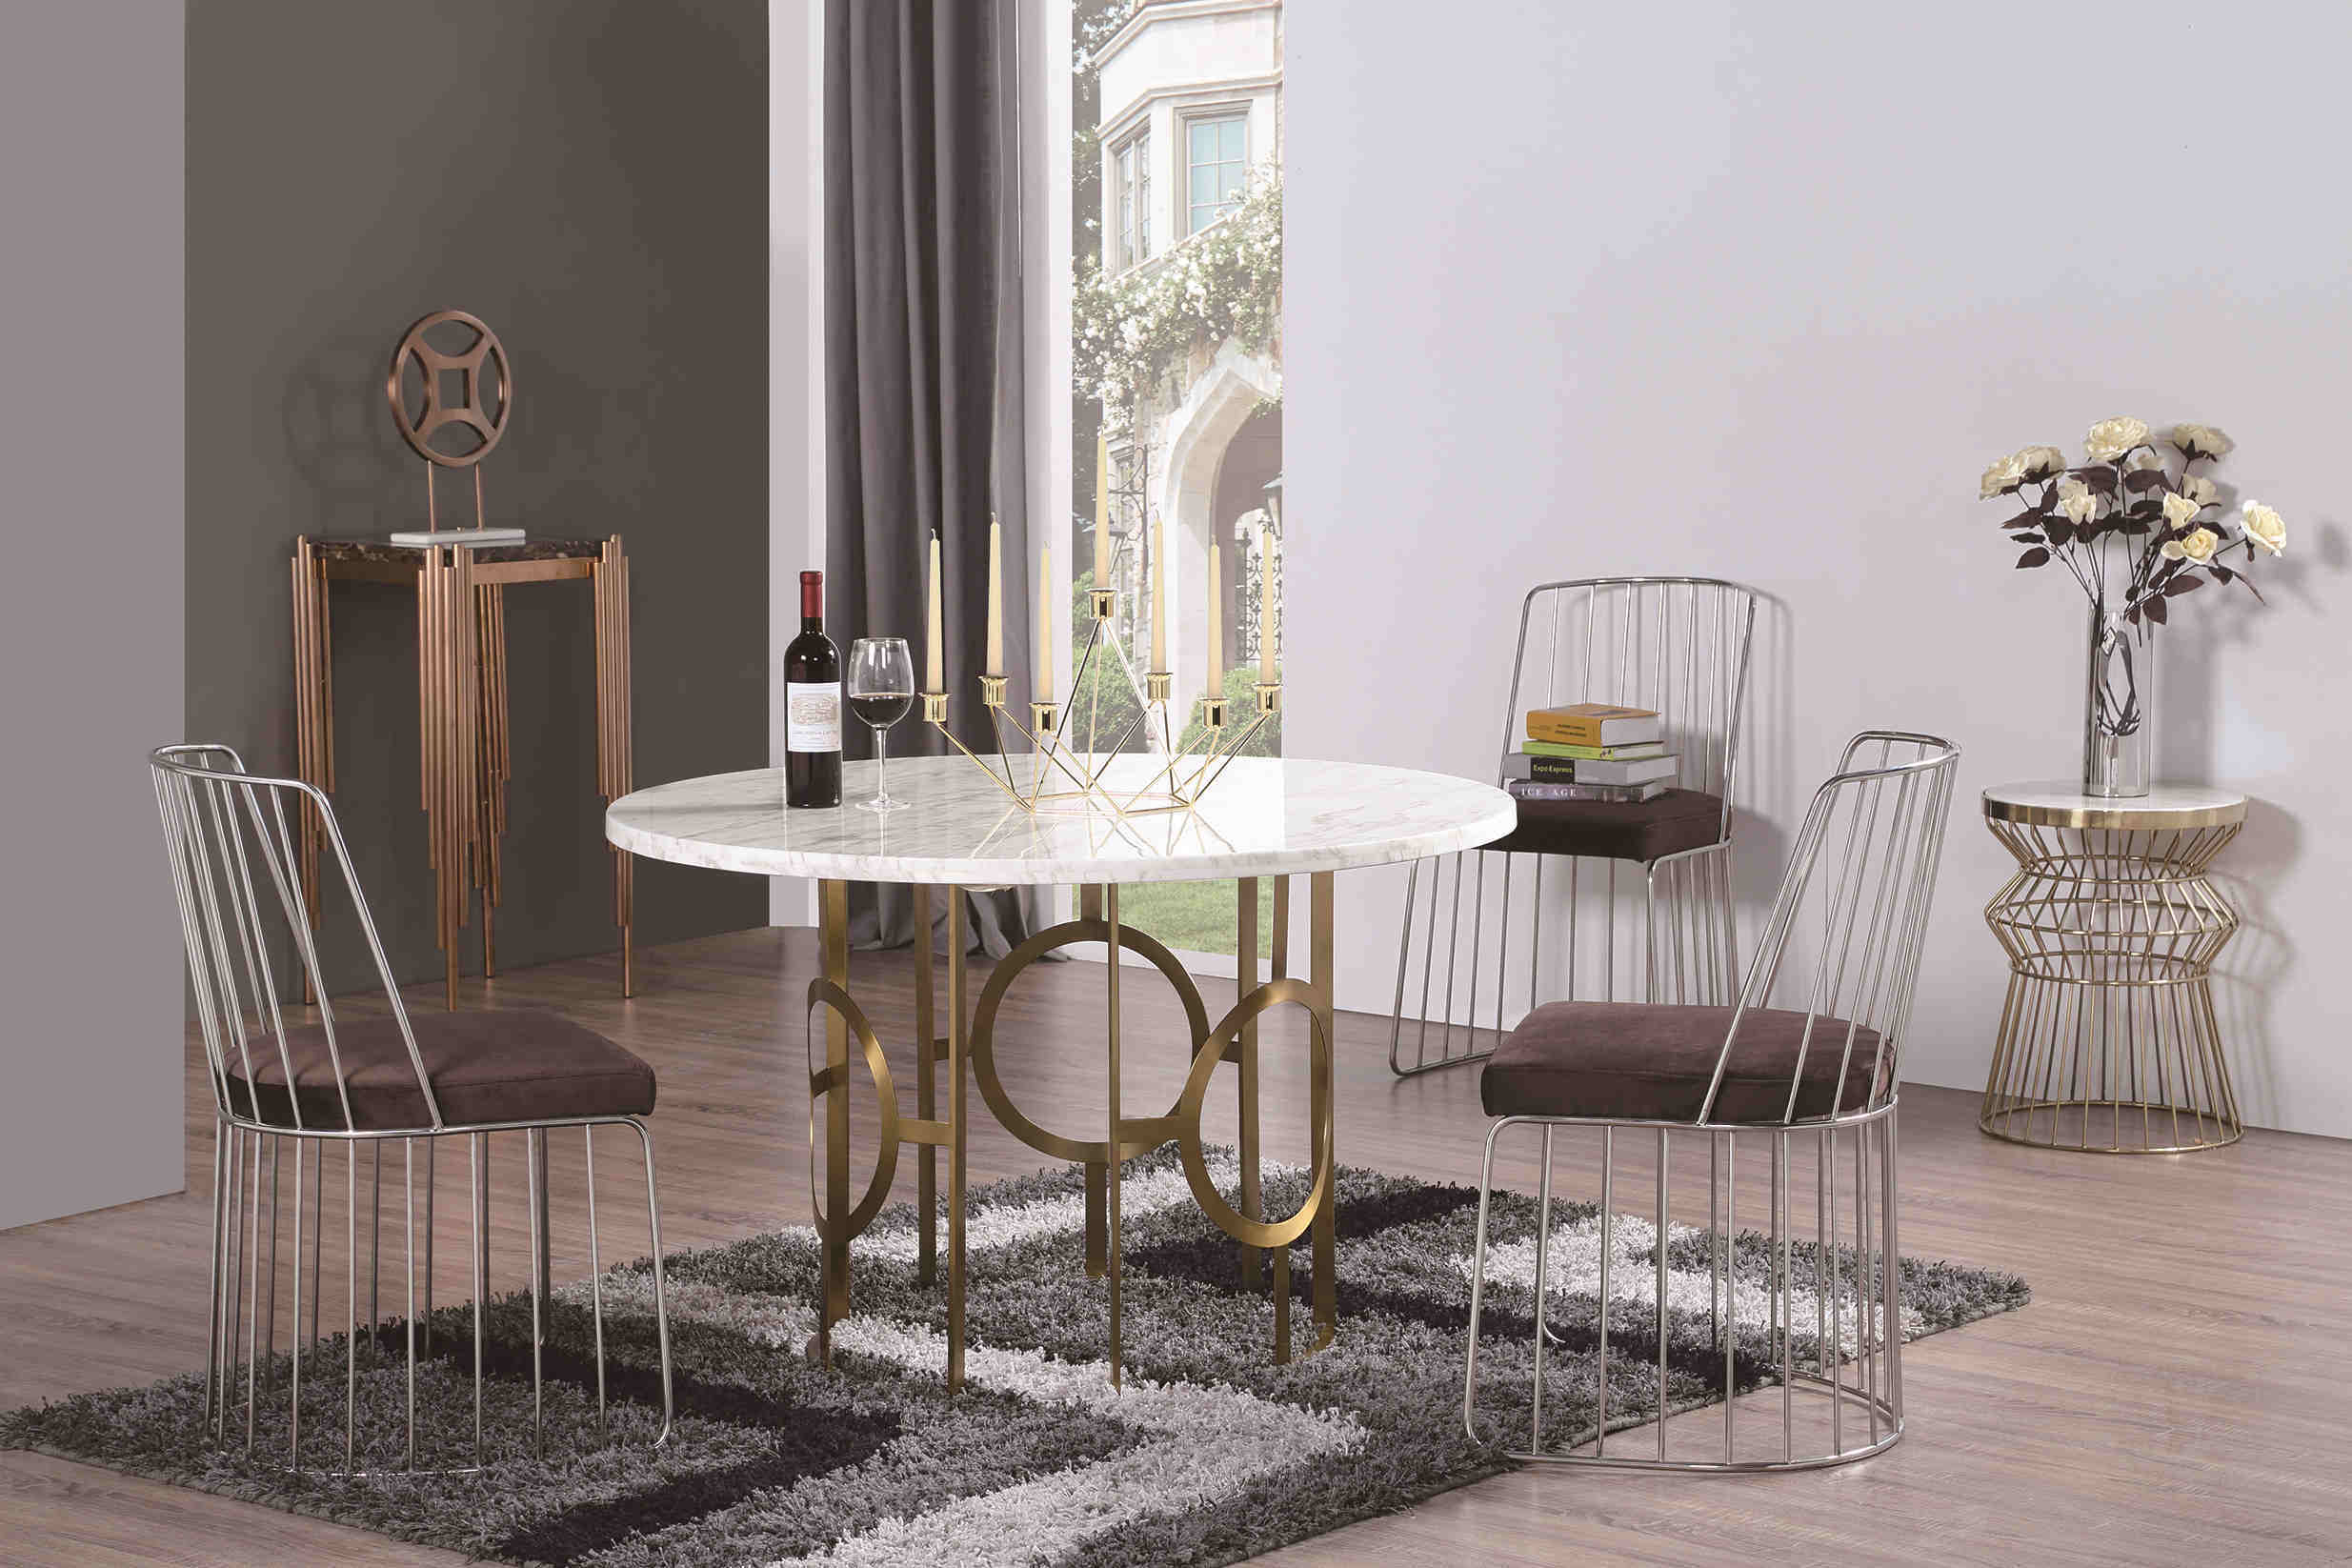 Morden Style Dining Table with Chairs